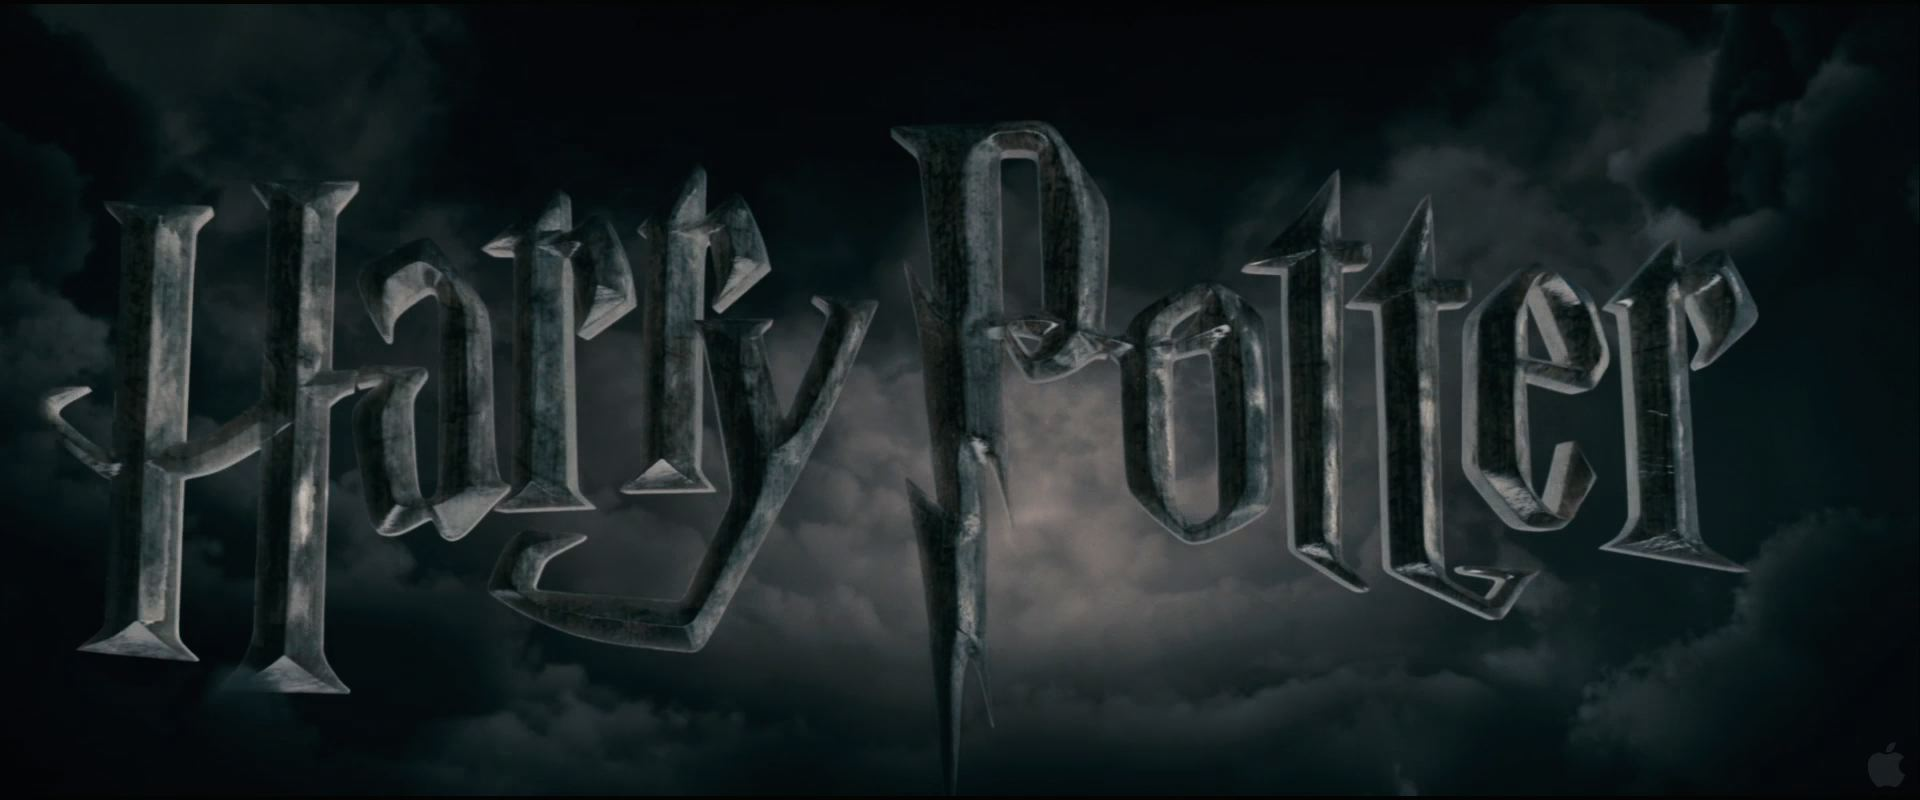 Fantastic Wallpaper Harry Potter Facebook - Harry-Potter-Logo-Wallpaper  Photograph_42066.jpg